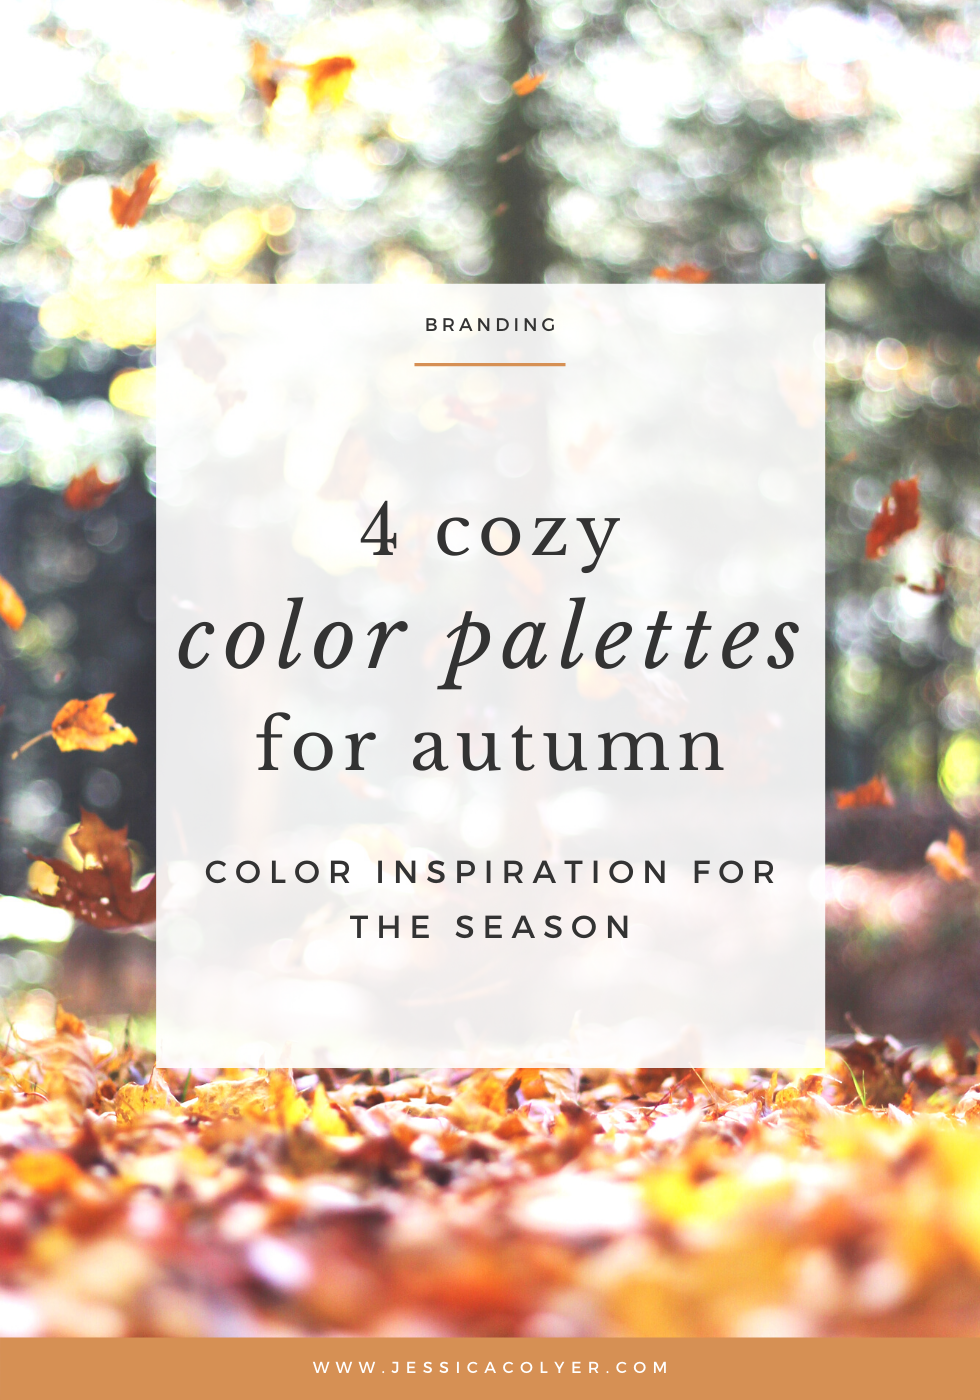 4 Cozy Color Palettes for Autumn